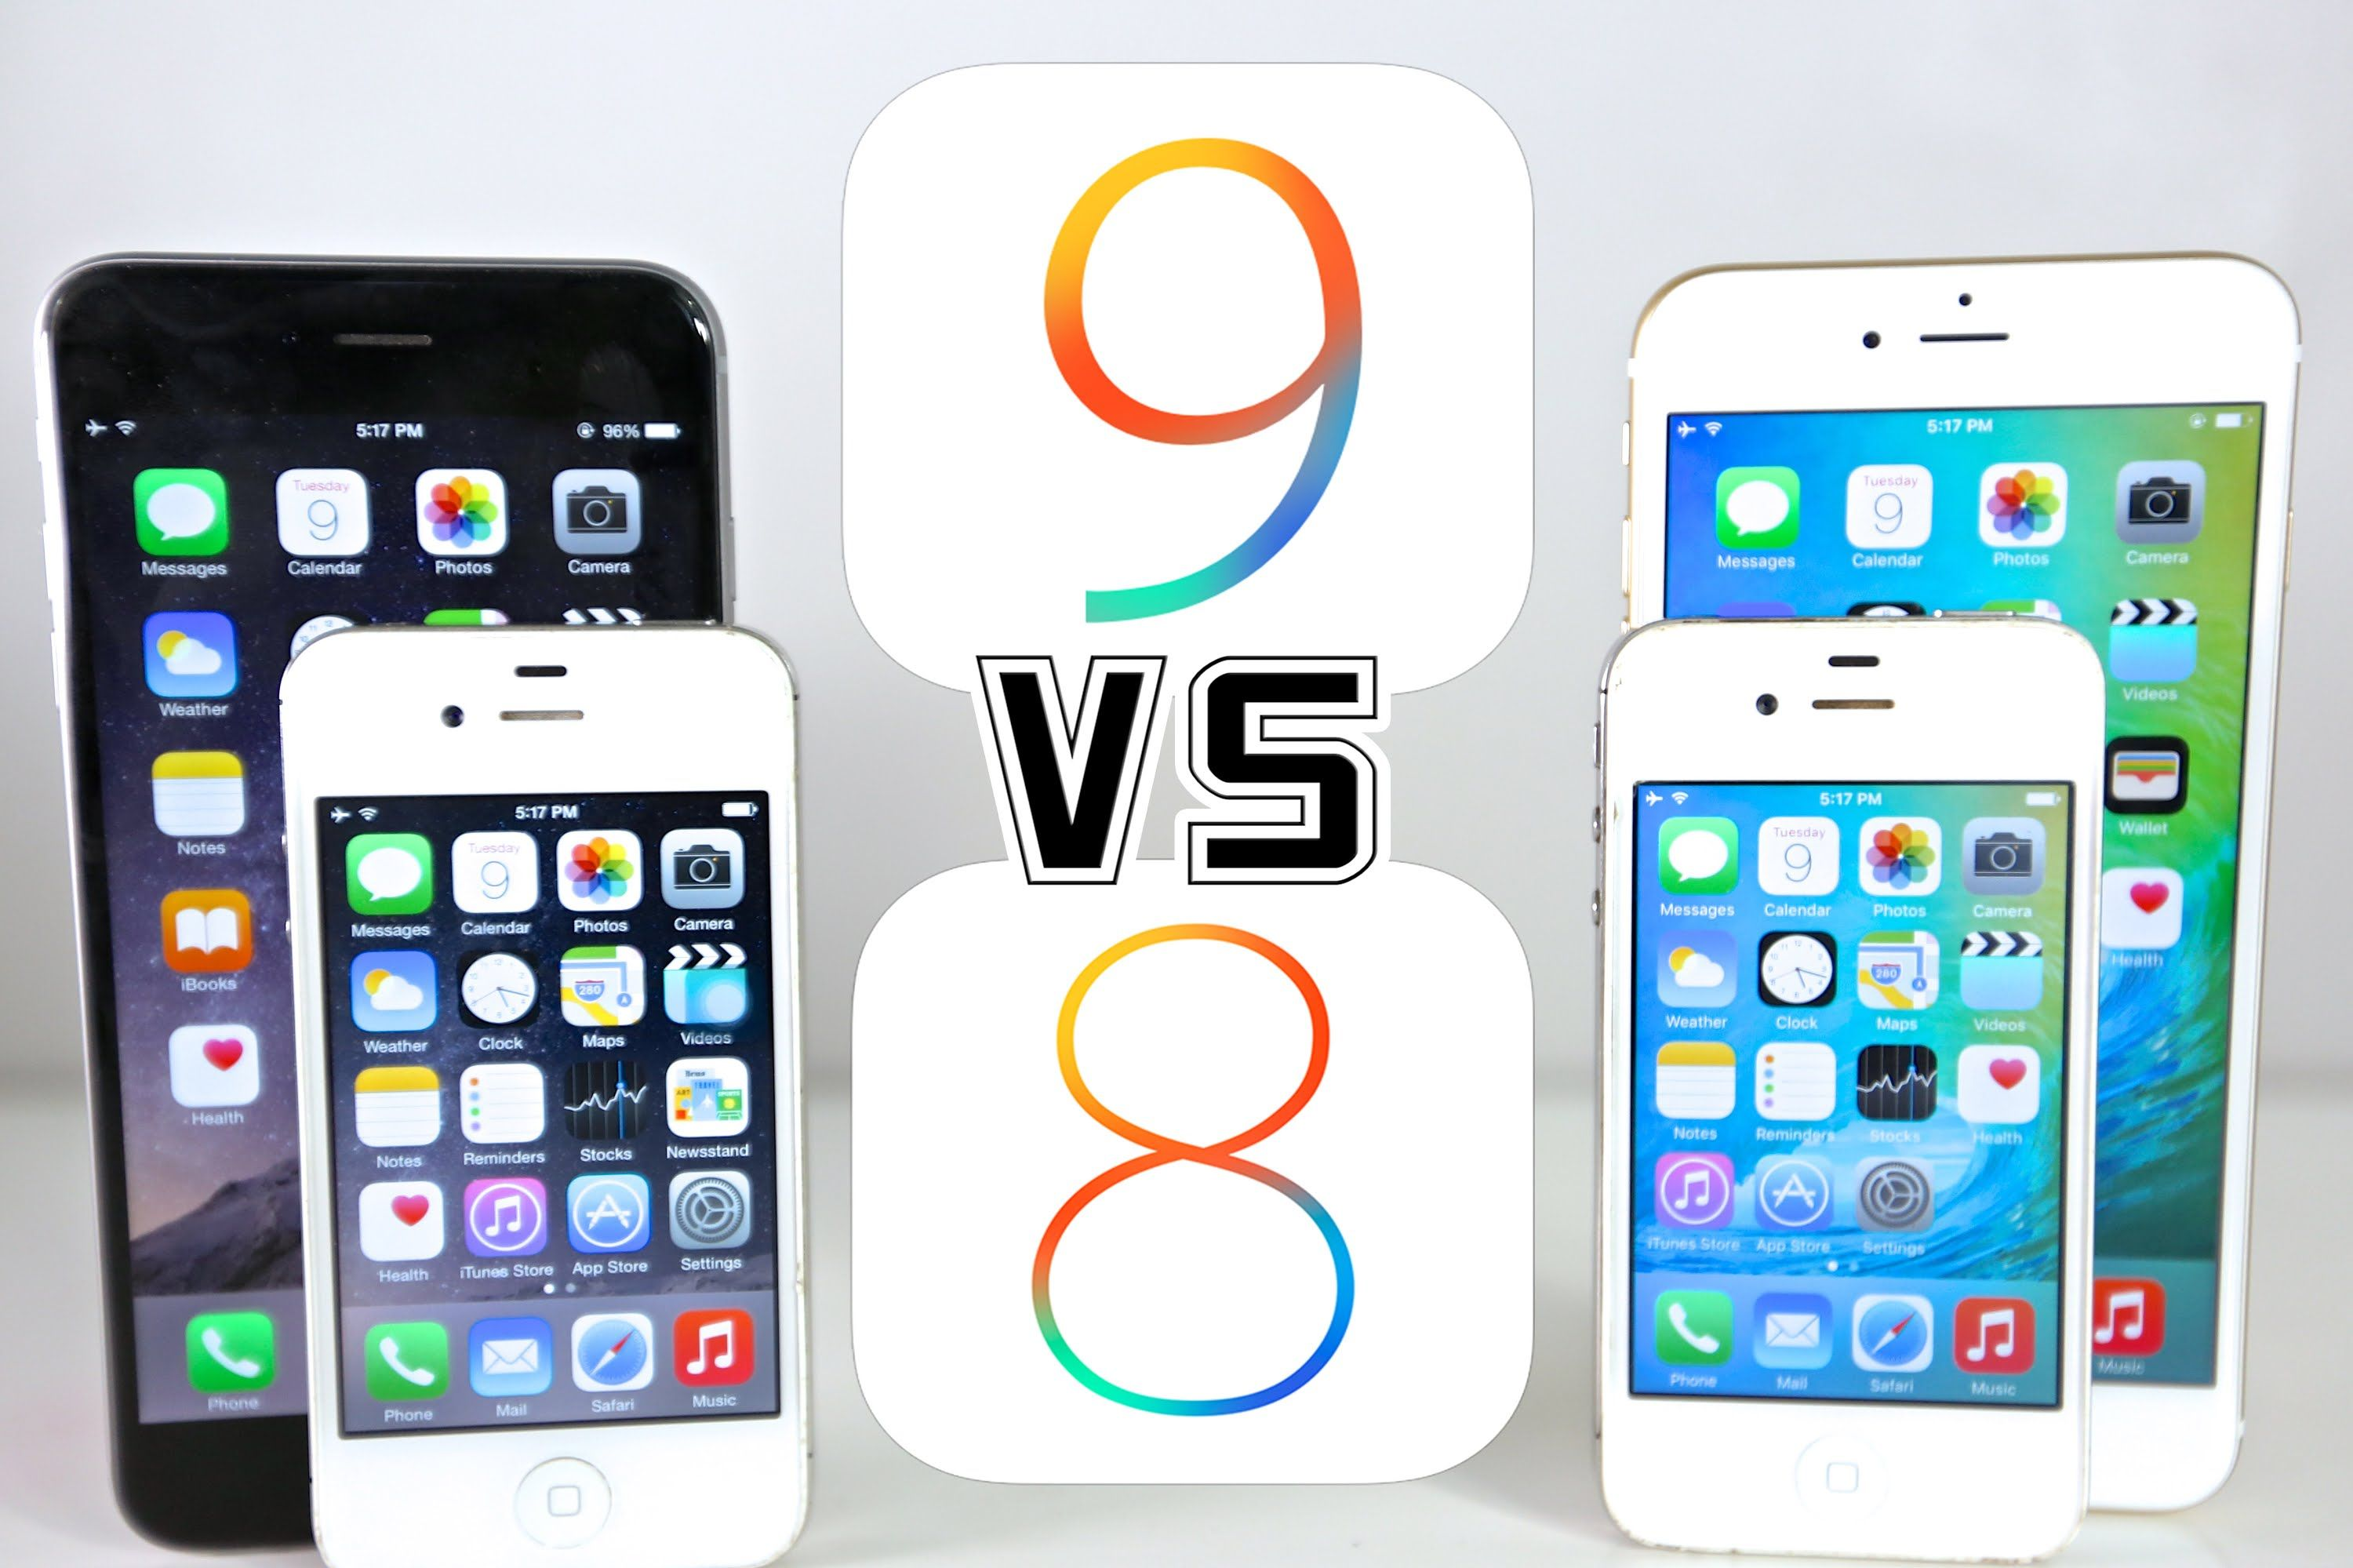 iOS 9 VS iOS 8 on iPhone 6, 5S, 5 & 4S Which Is Faster